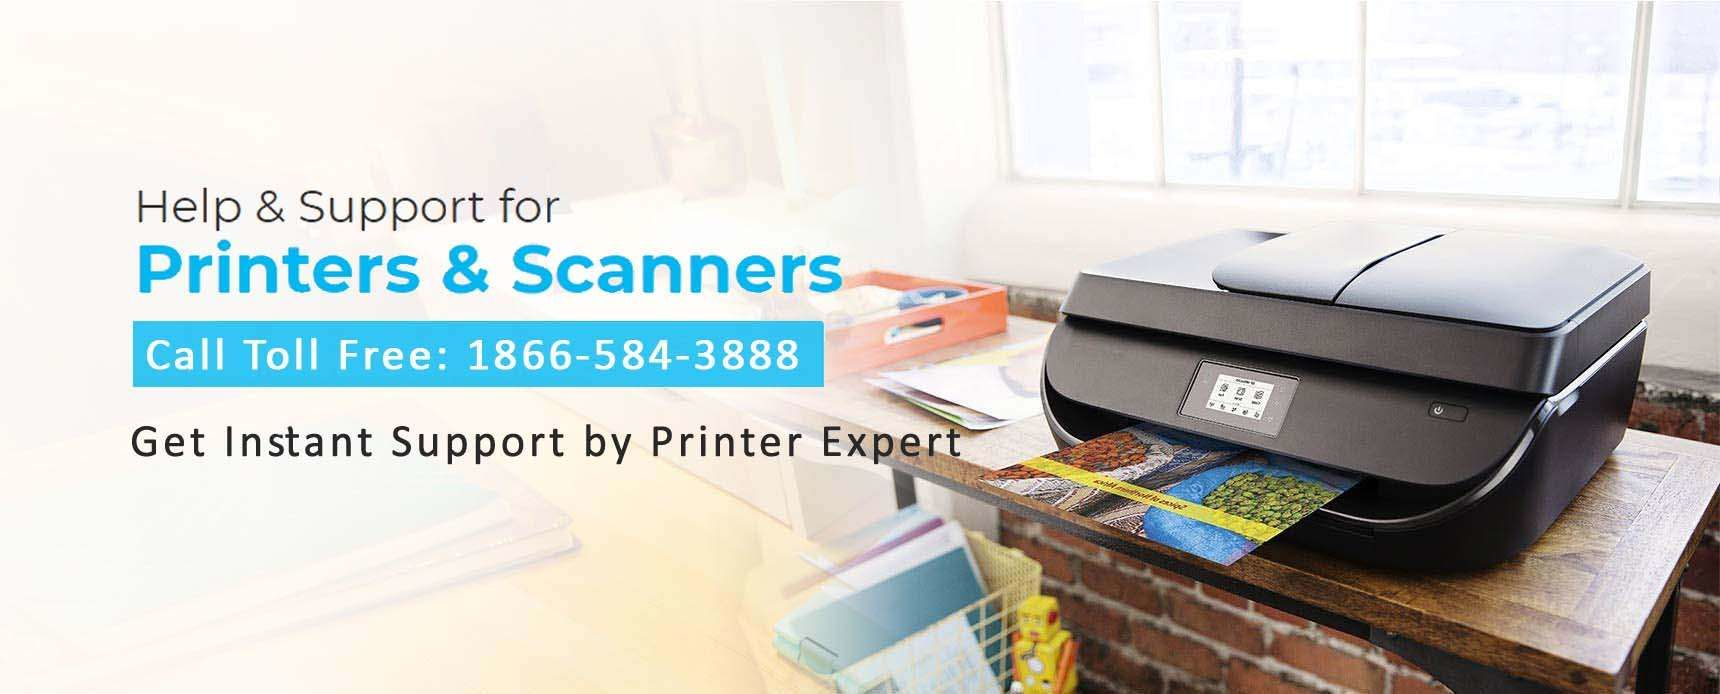 HP Envy Printer Support In USA | HP Printer Support Number